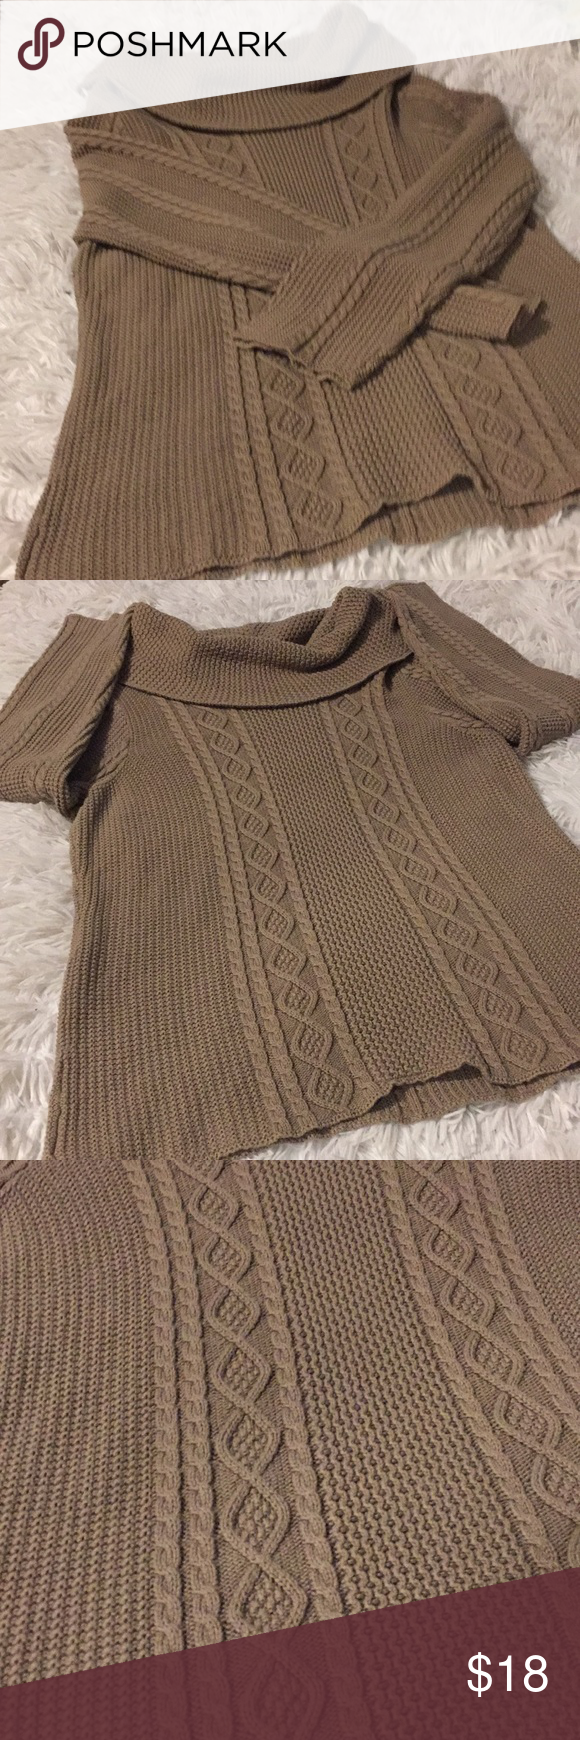 jeanne pierre cowl neck sweater preloved in good condition  smoke free environment  sz xl  100